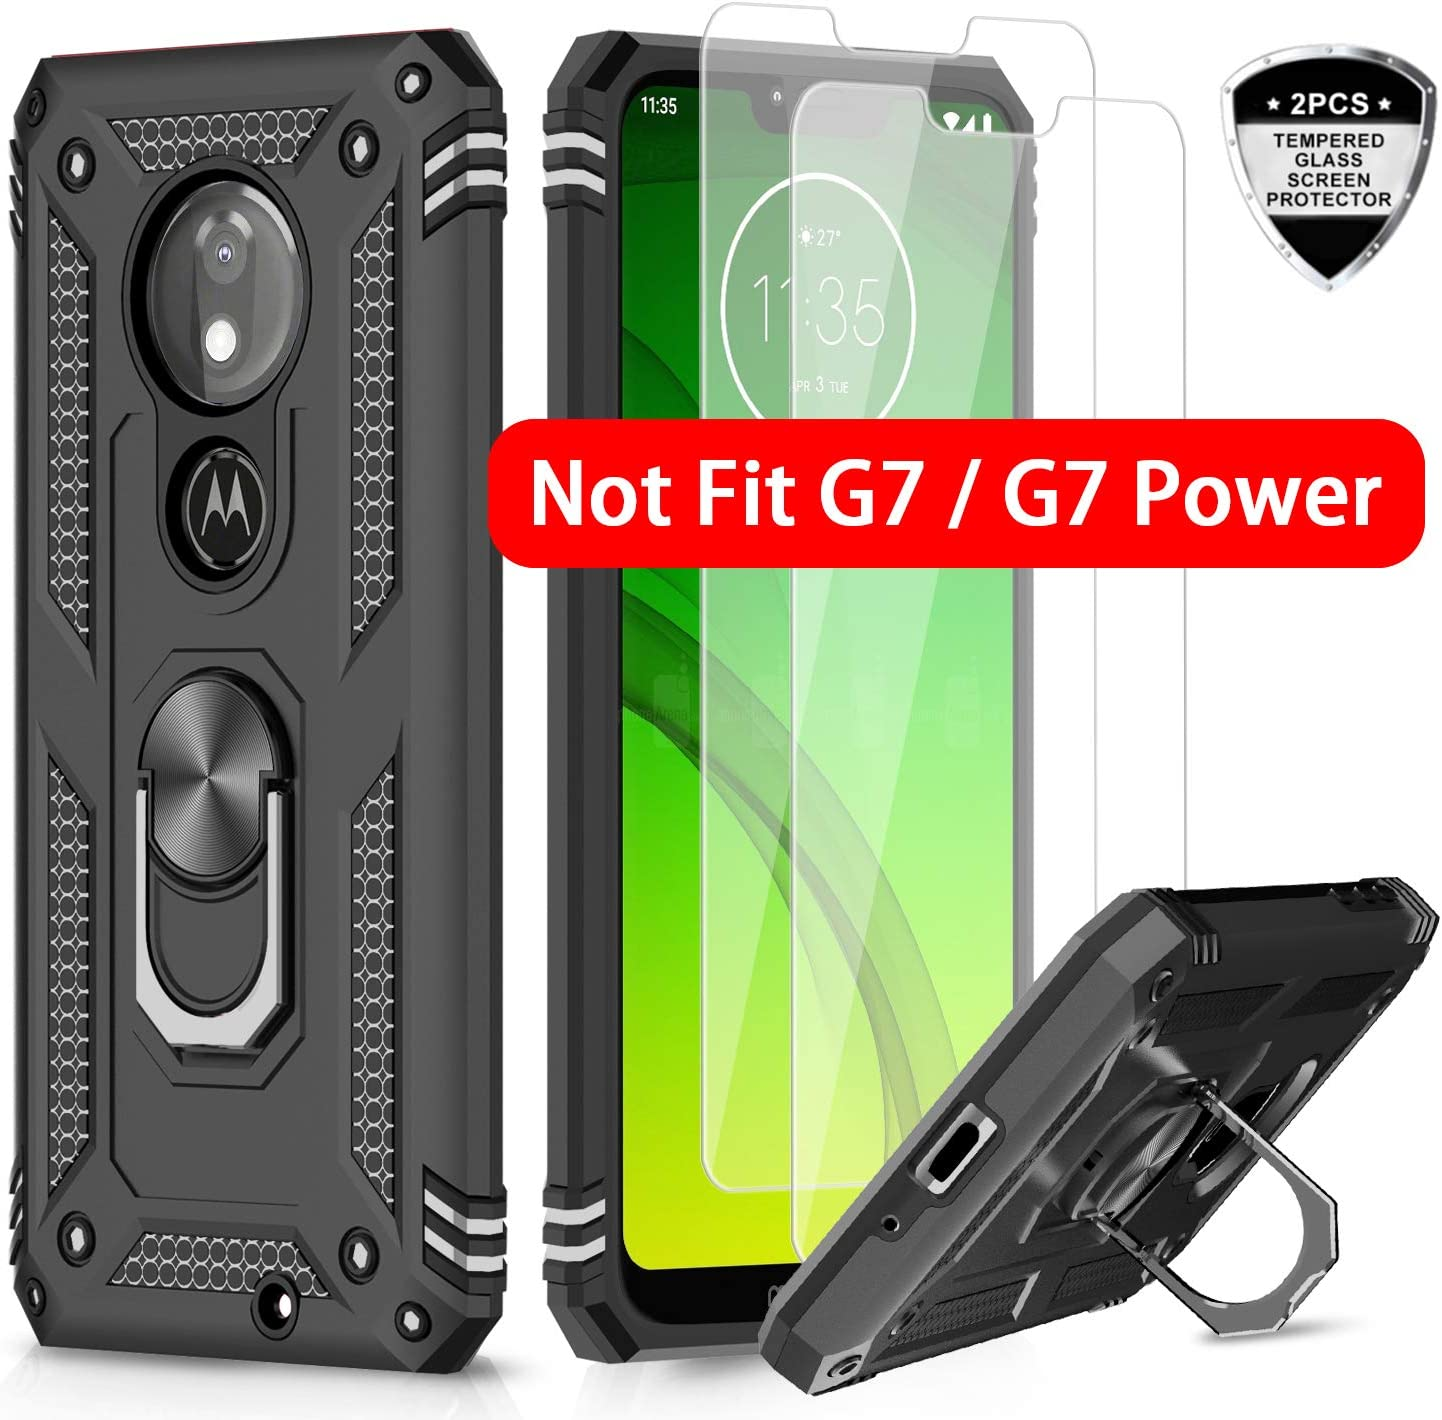 LeYi Moto G7 Play Case (Not Fit Moto G7) with Tempered Glass Screen Protector [2 Pack], Military Grade Defender Phone Case with Magnetic Car Mount Kickstand for Moto G7 Play, Black